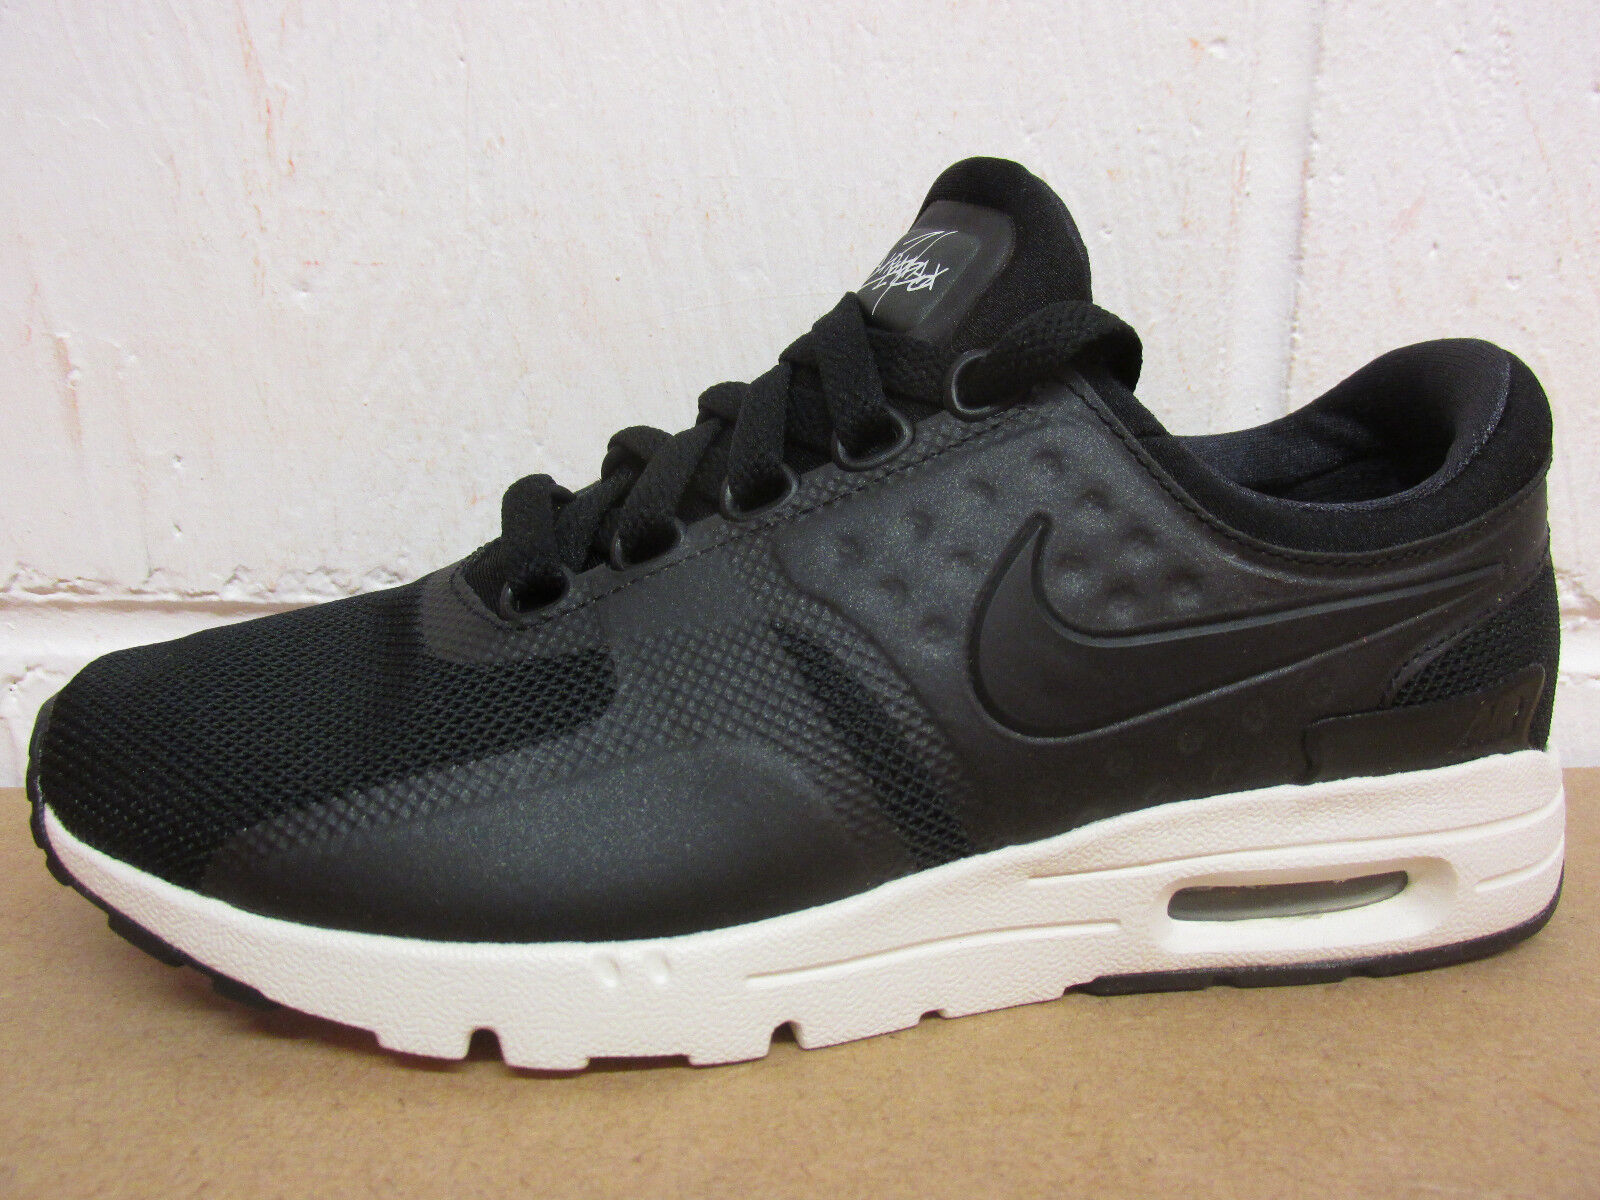 Nike Womens Air Max Zero Zero Zero Running Trainers 857661 002 Sneakers shoes 406485